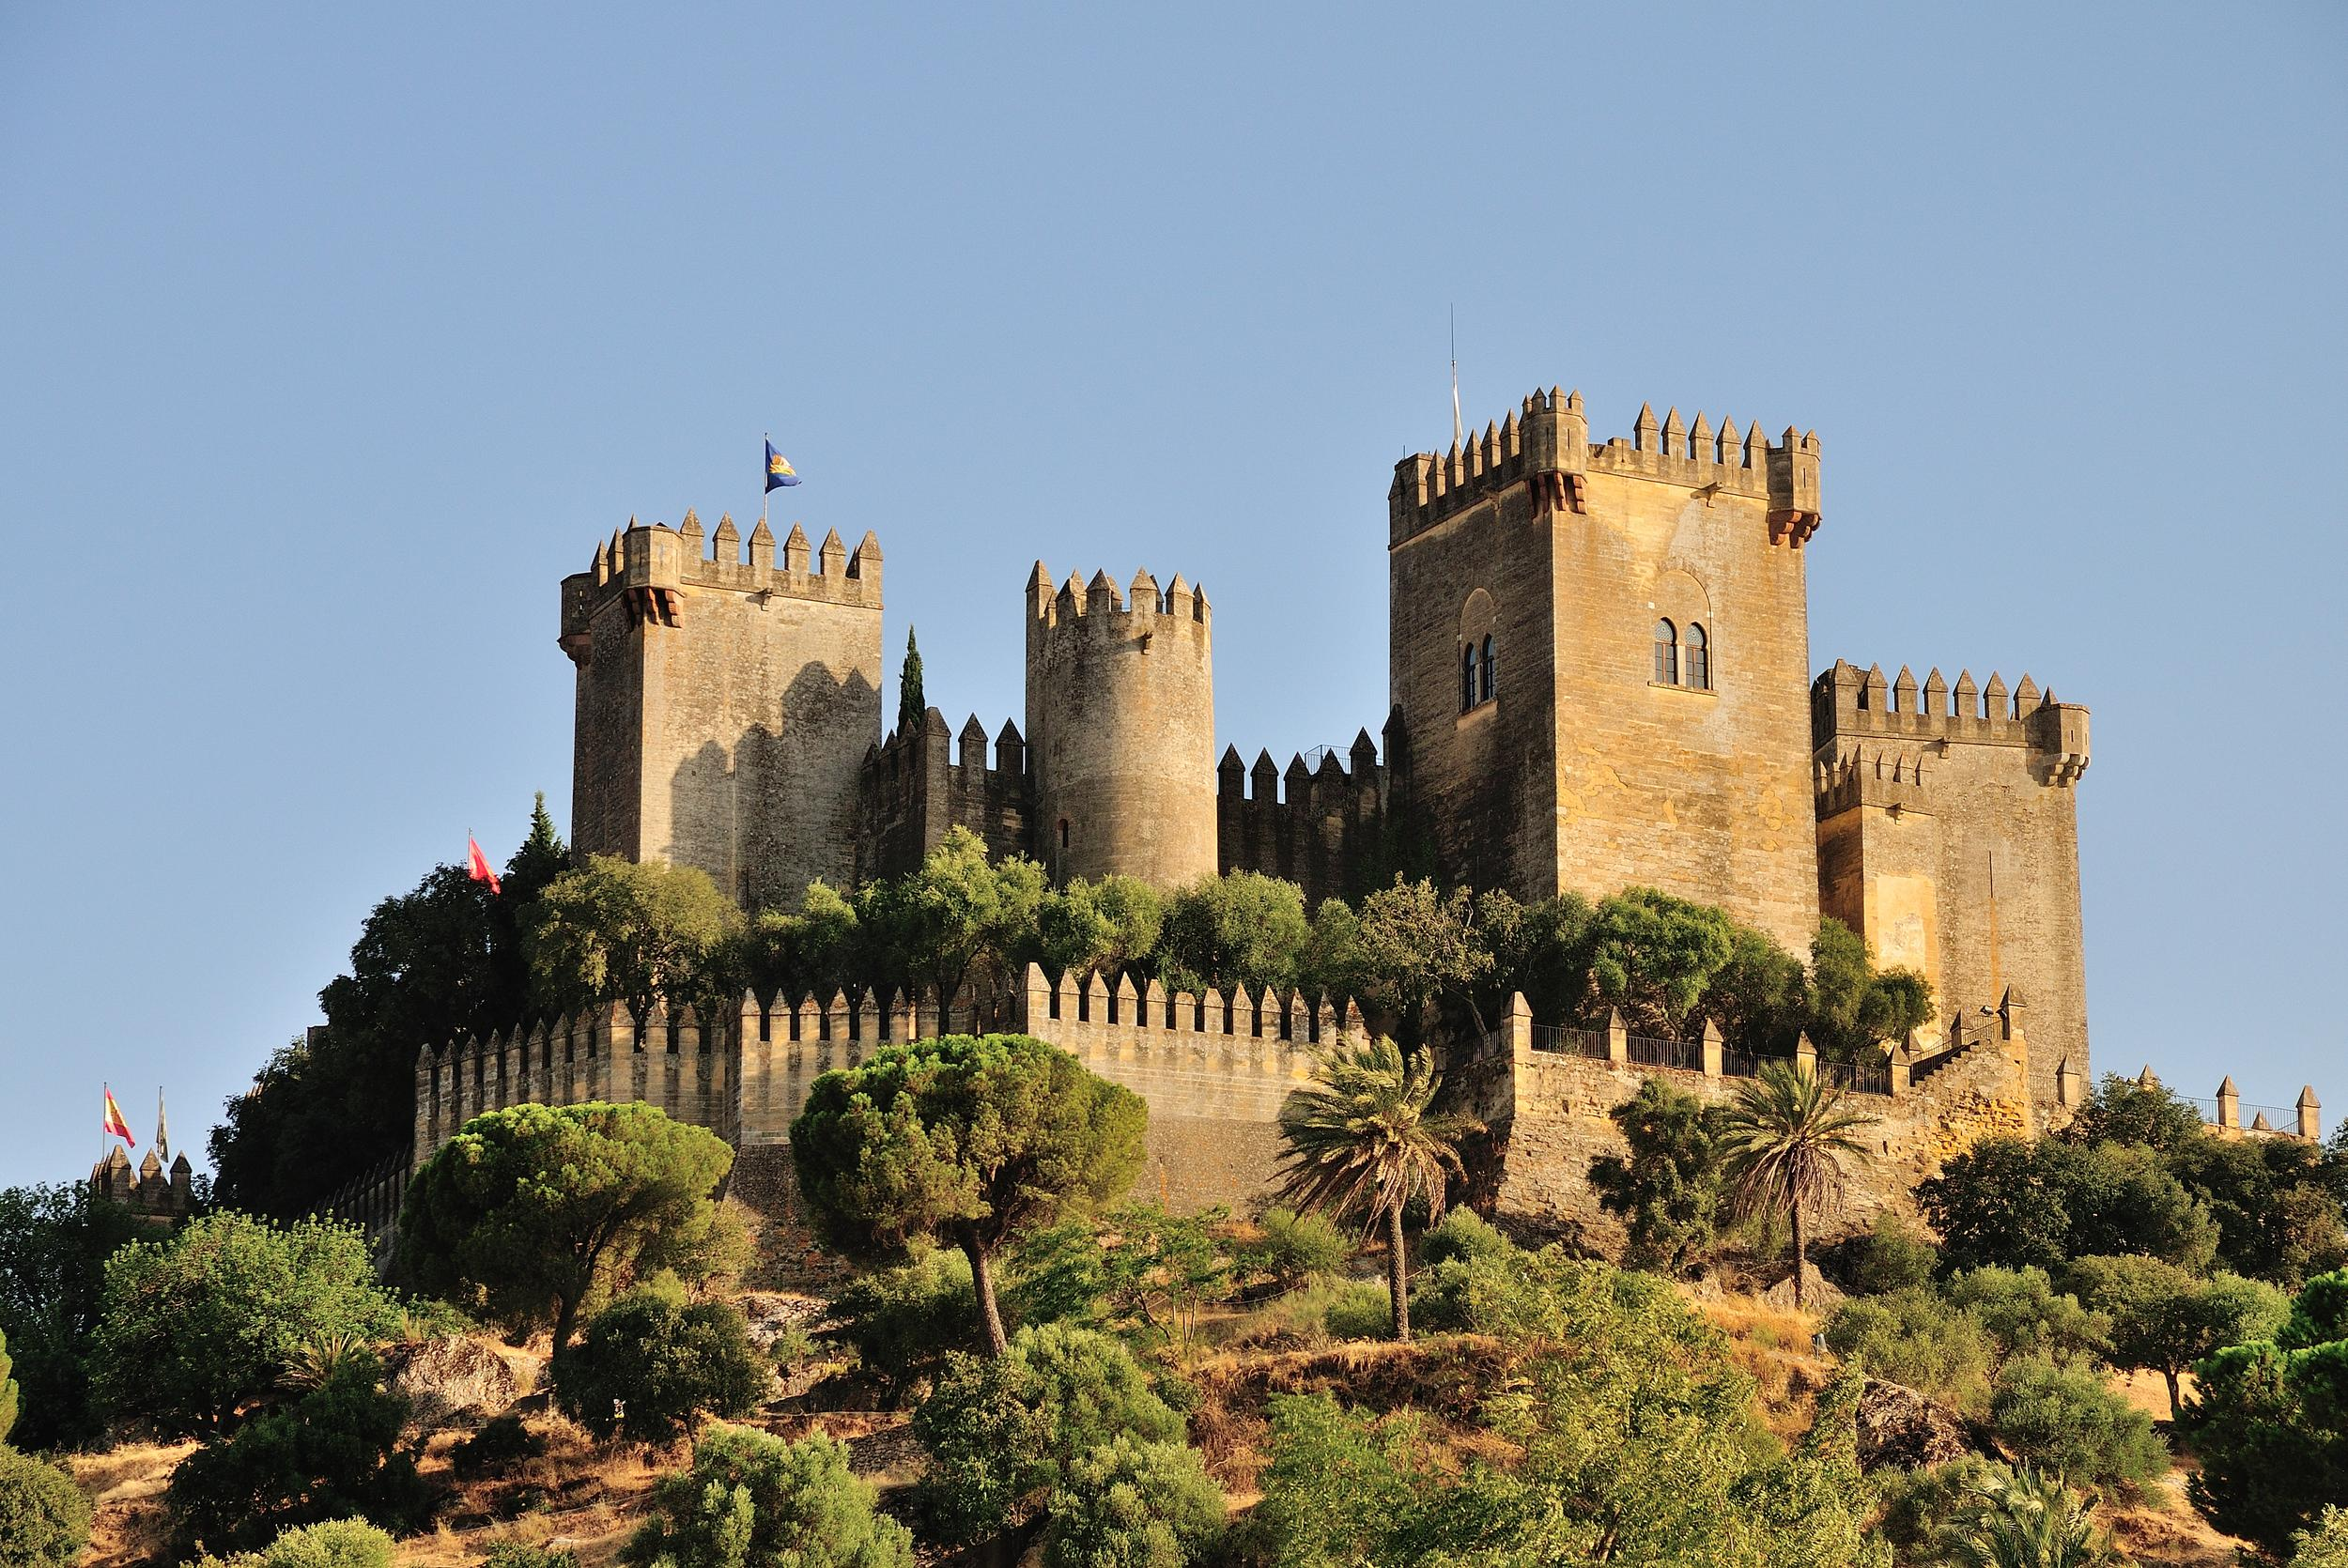 """<p><strong>GOT location</strong>: Highgarden</p>  <p><strong>Real life location</strong>: Almodóvar Castle, Andalusia, Spain</p>  <p>Take a trip to the home of the Tyrells by visiting Highgarden -- which is reallyAlmodóvar Castle in Spain.</p>  <p><strong><a href=""""https://fave.co/2PdAjex"""">Book your trip.</a></strong></p>"""